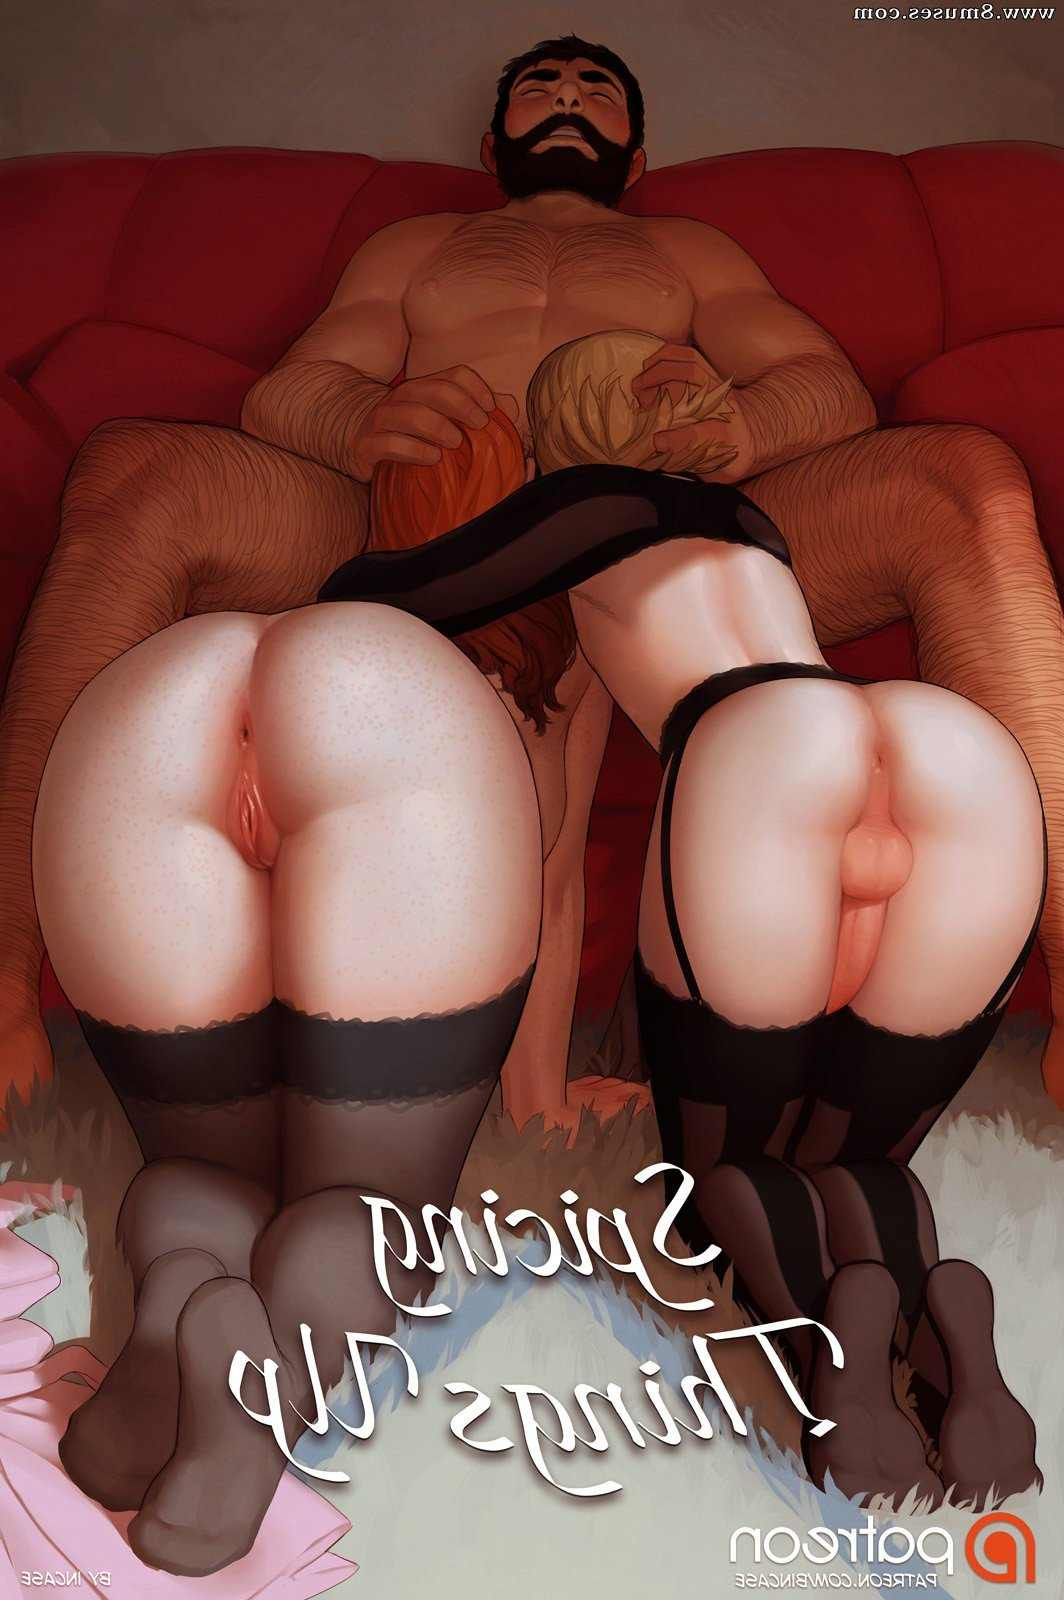 PrismGirls-Comics/Spicing-Things-Up Spicing_Things_Up__8muses_-_Sex_and_Porn_Comics.jpg